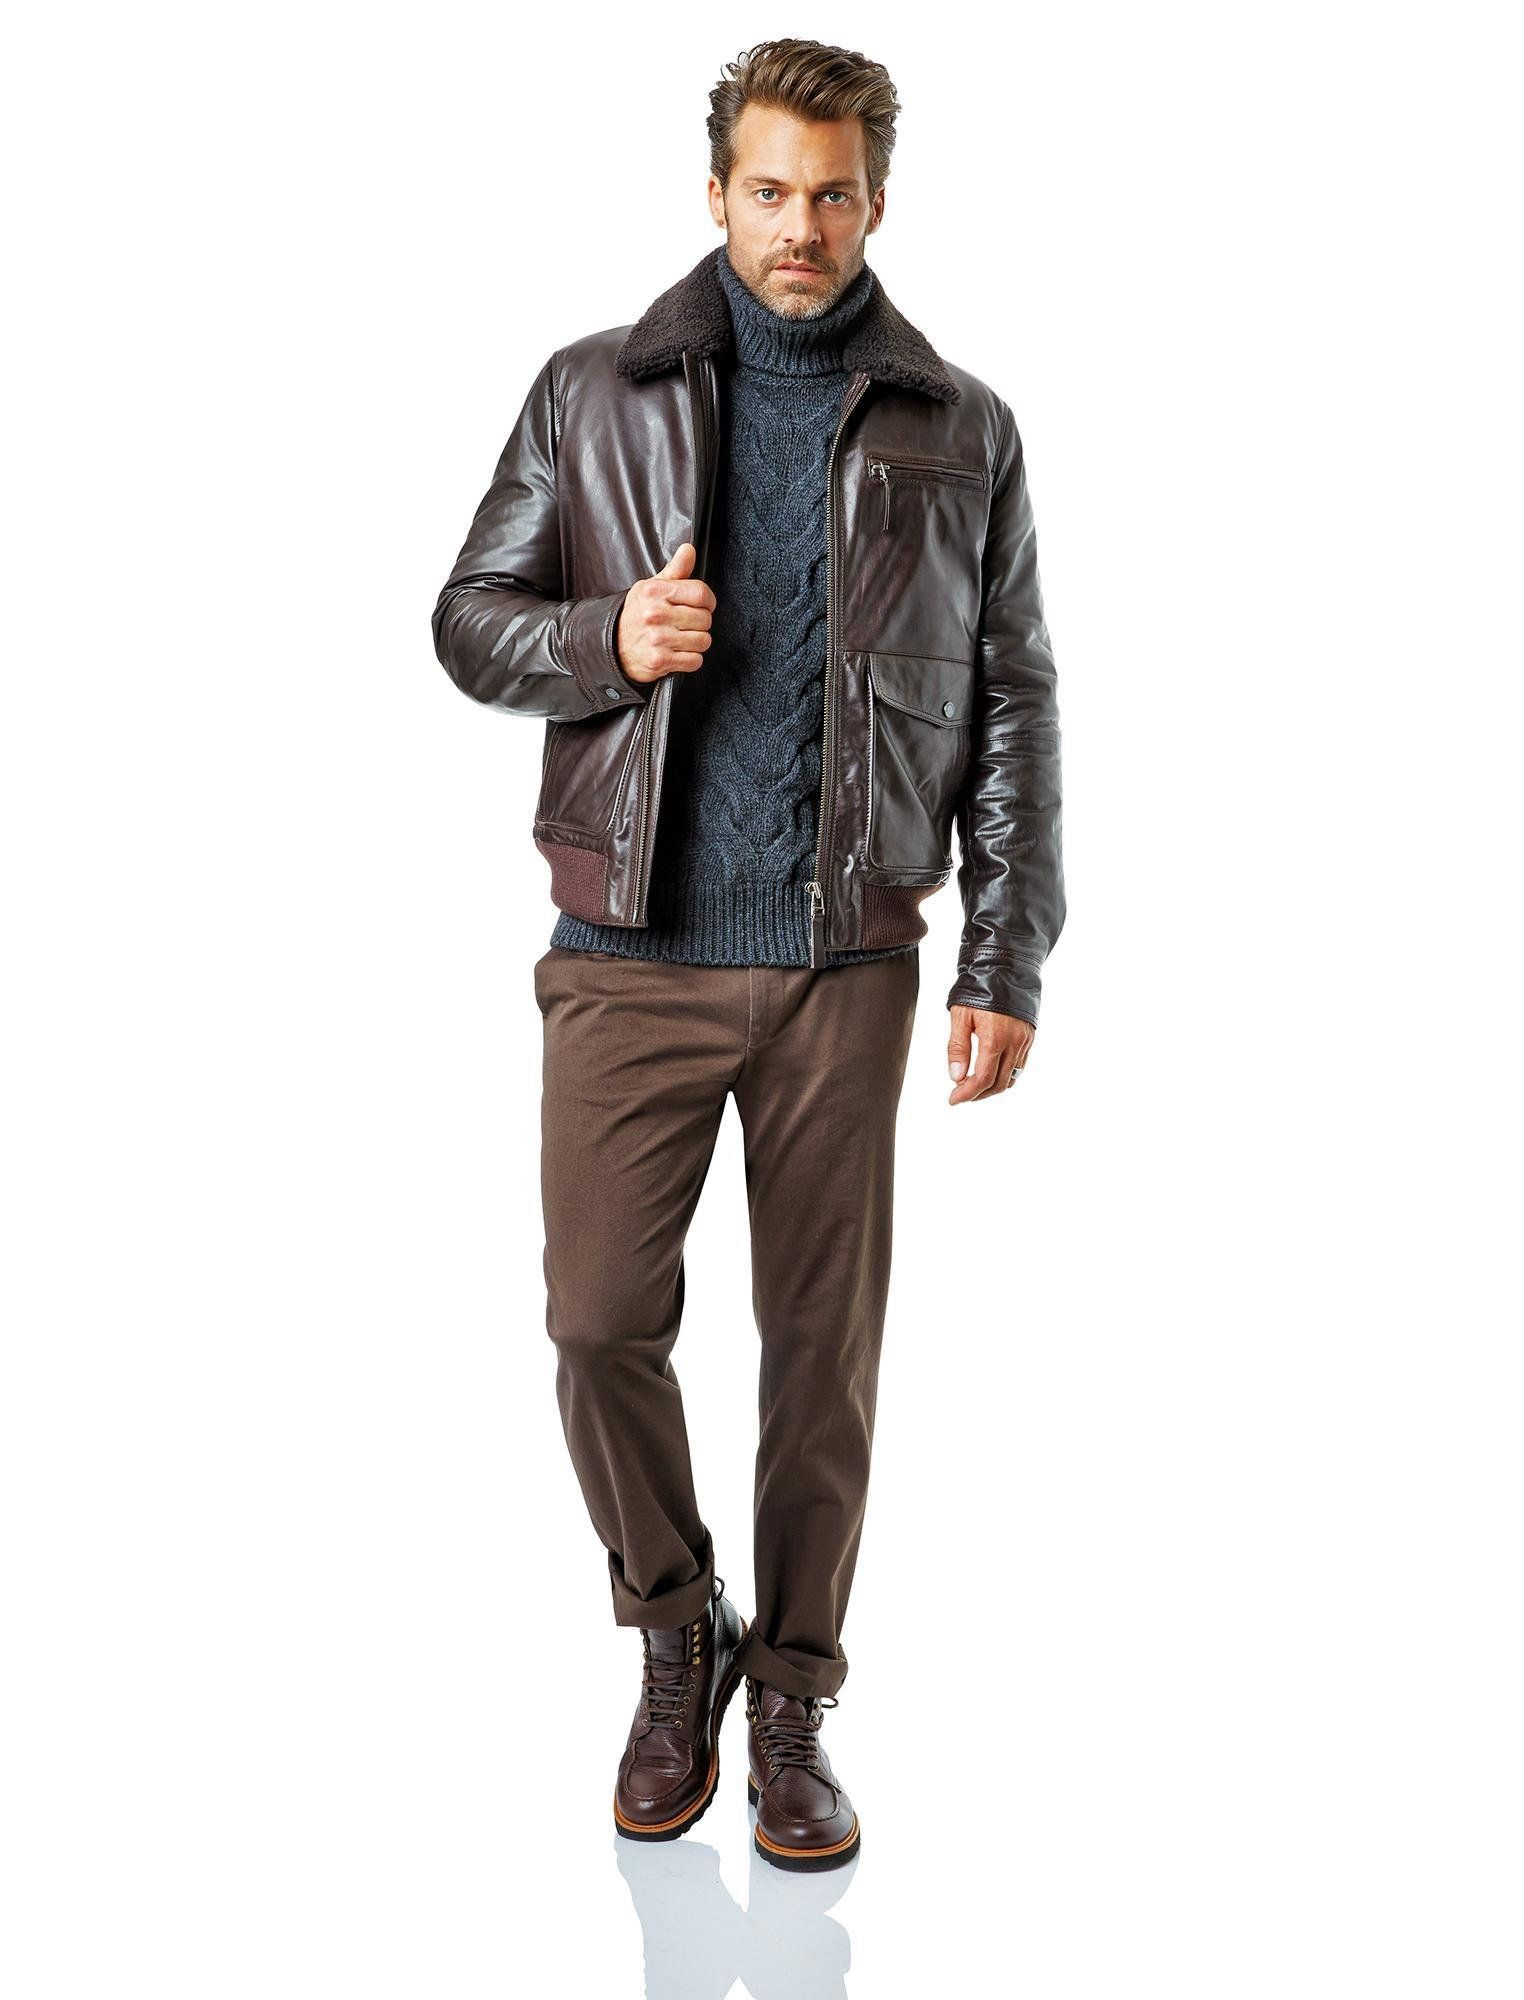 Baldessarini Fall Winter Lookbook 2014 2015 #menswear #style #brown  #leather #jacket #boots #sweater #turtleneck